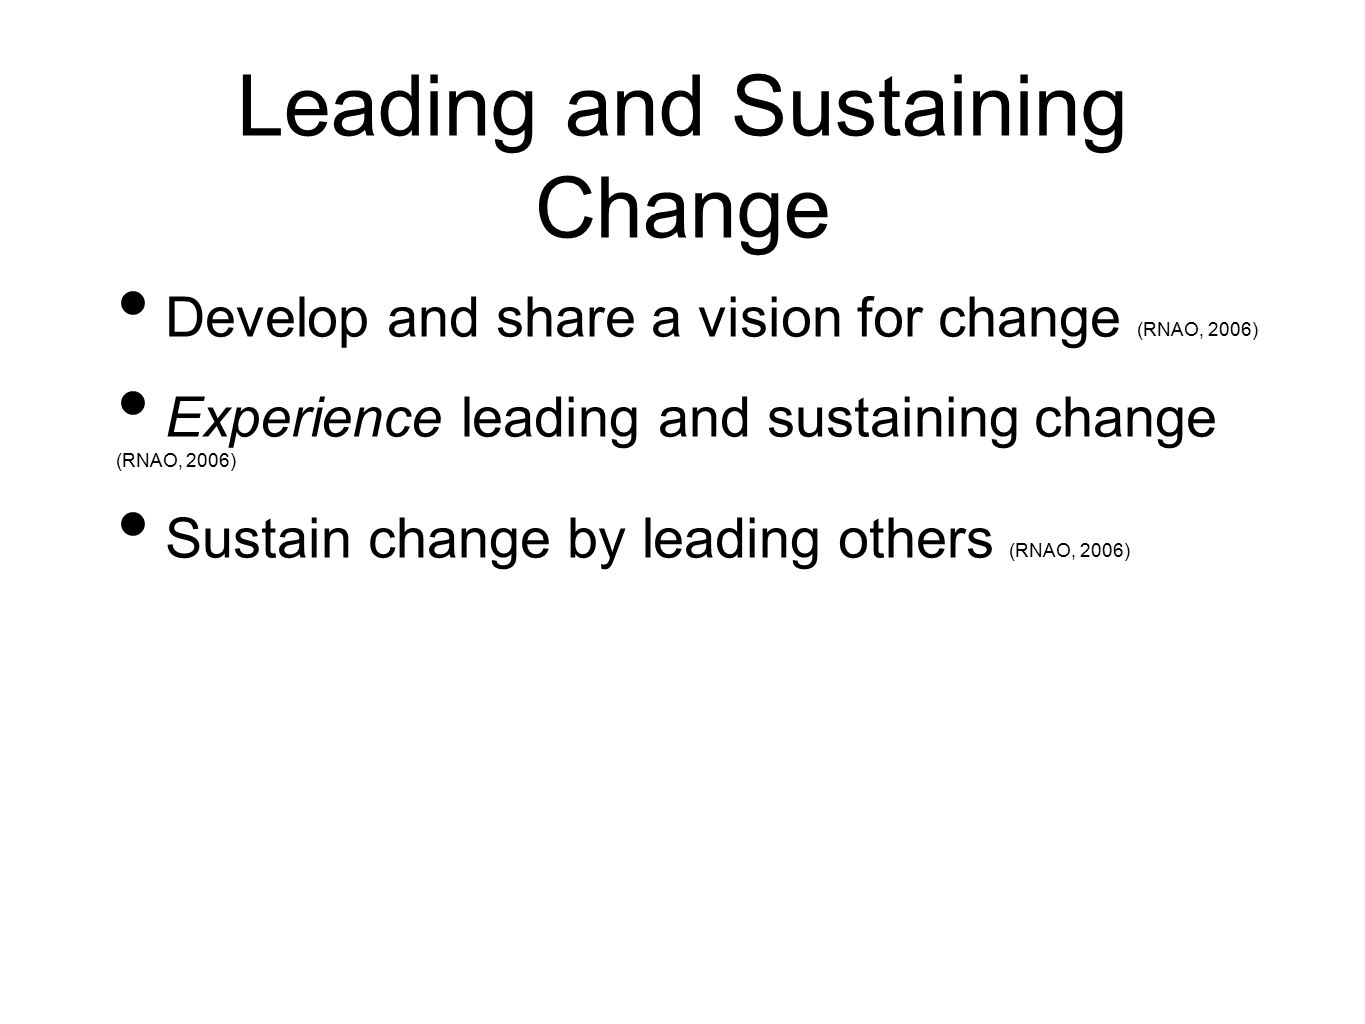 Leading and Sustaining Change Develop and share a vision for change (RNAO, 2006) Experience leading and sustaining change (RNAO, 2006) Sustain change by leading others (RNAO, 2006)